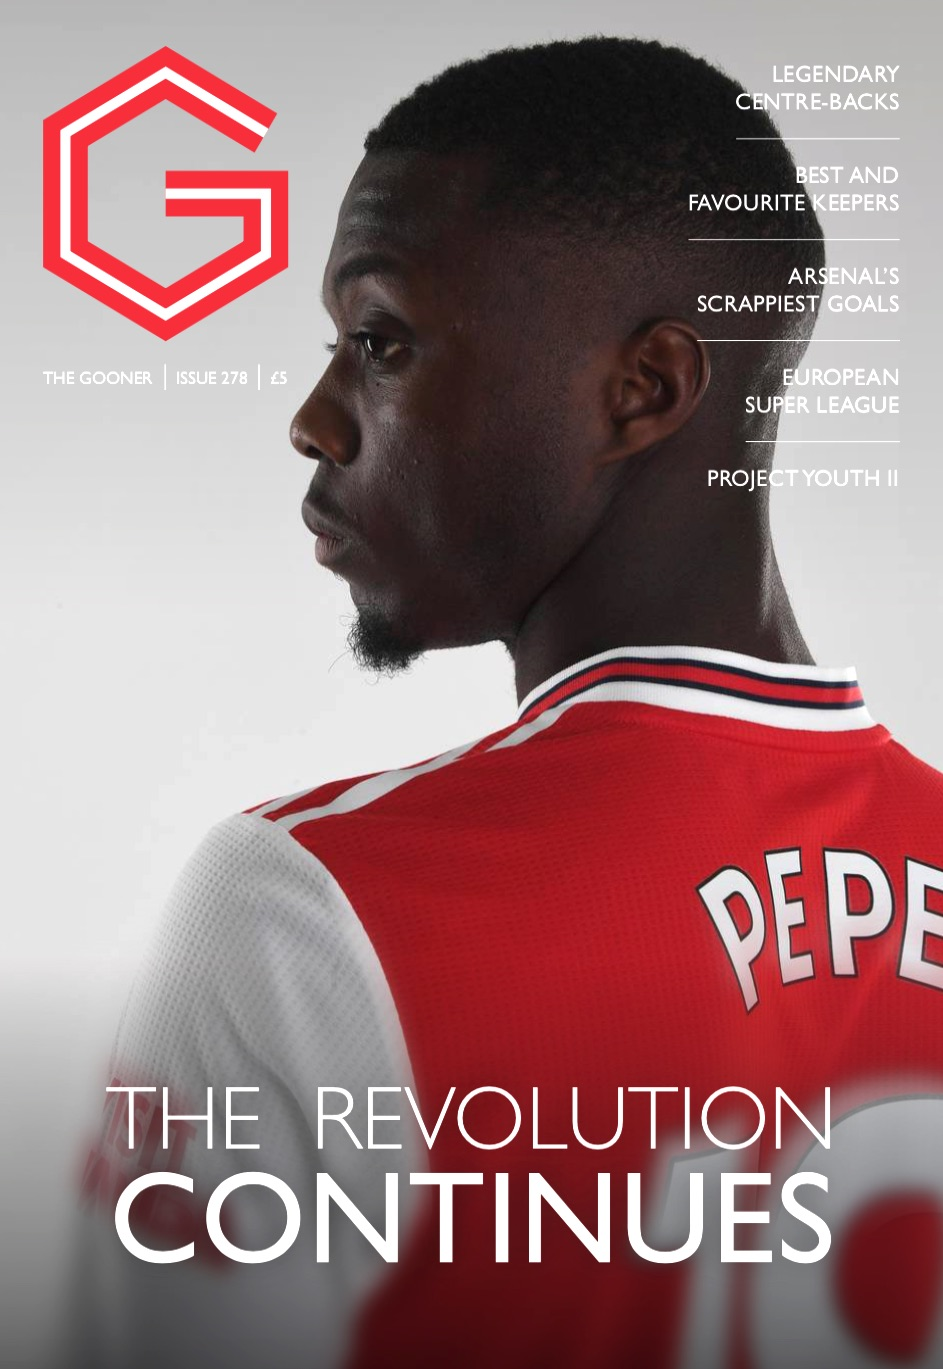 Current Edition (Overseas) – The Gooner Issue 278